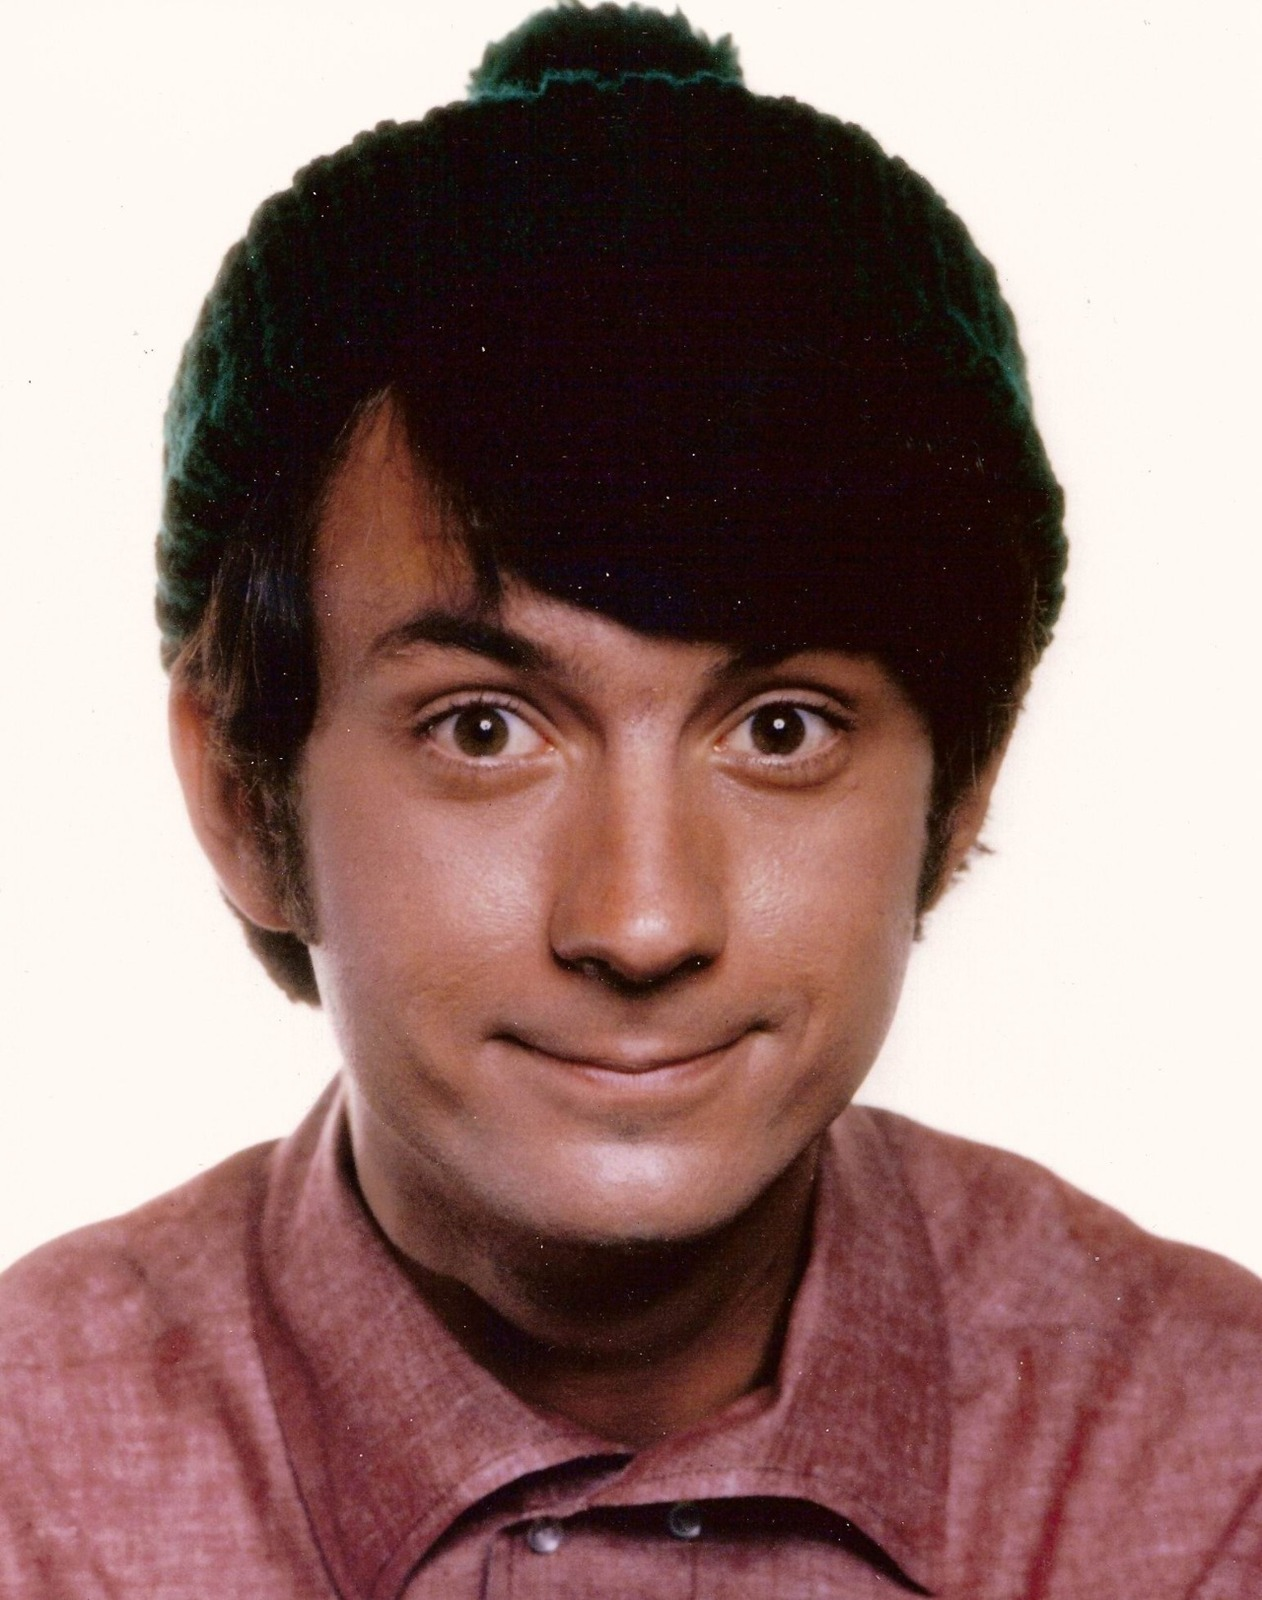 Mike-Nesmith-mike-nesmith-29546983-1280-1623.